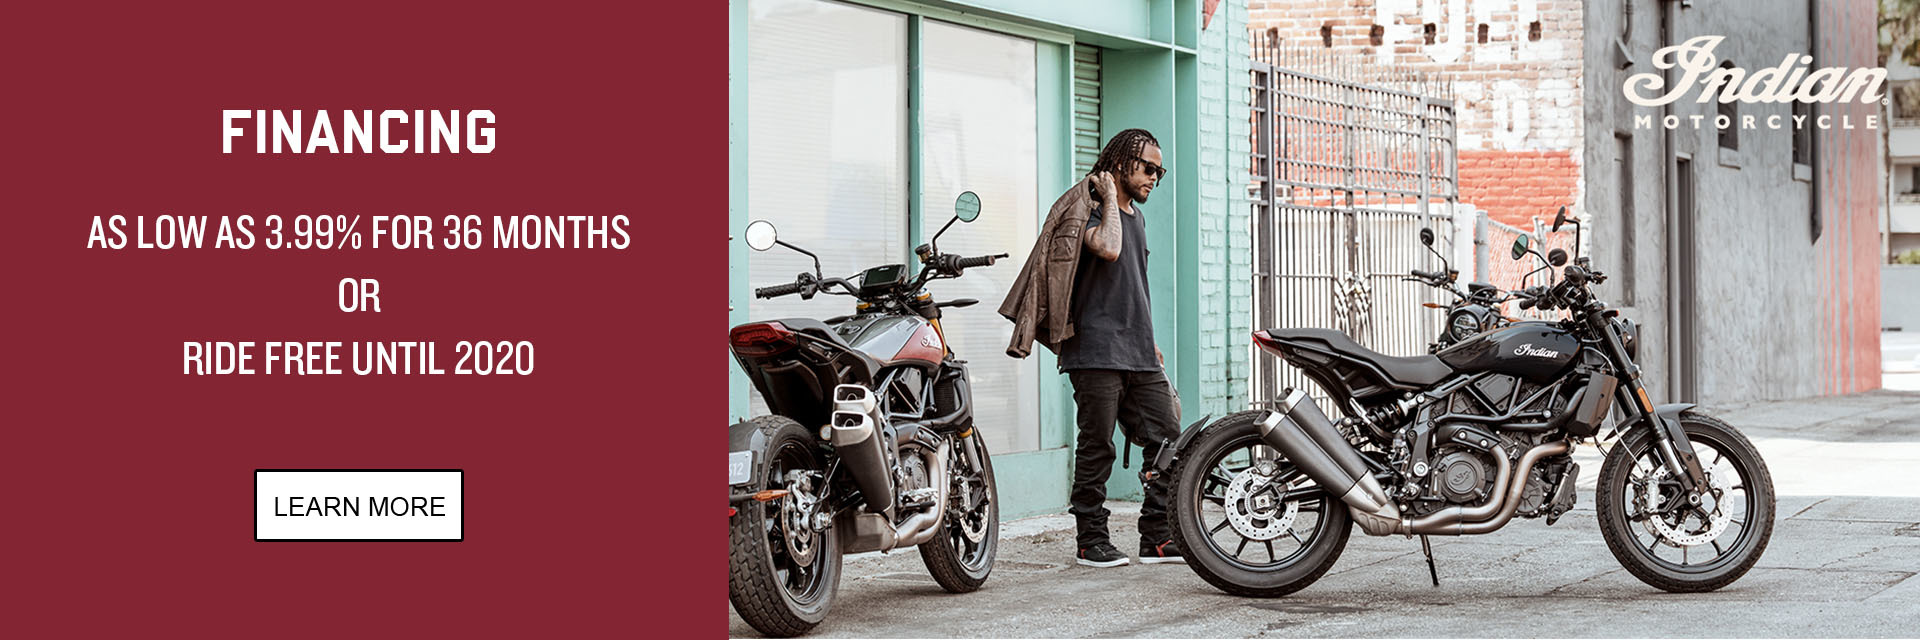 Indian Promotional Financing - 2019 FTR 1200 Family at Indian Motorcycle of Northern Kentucky